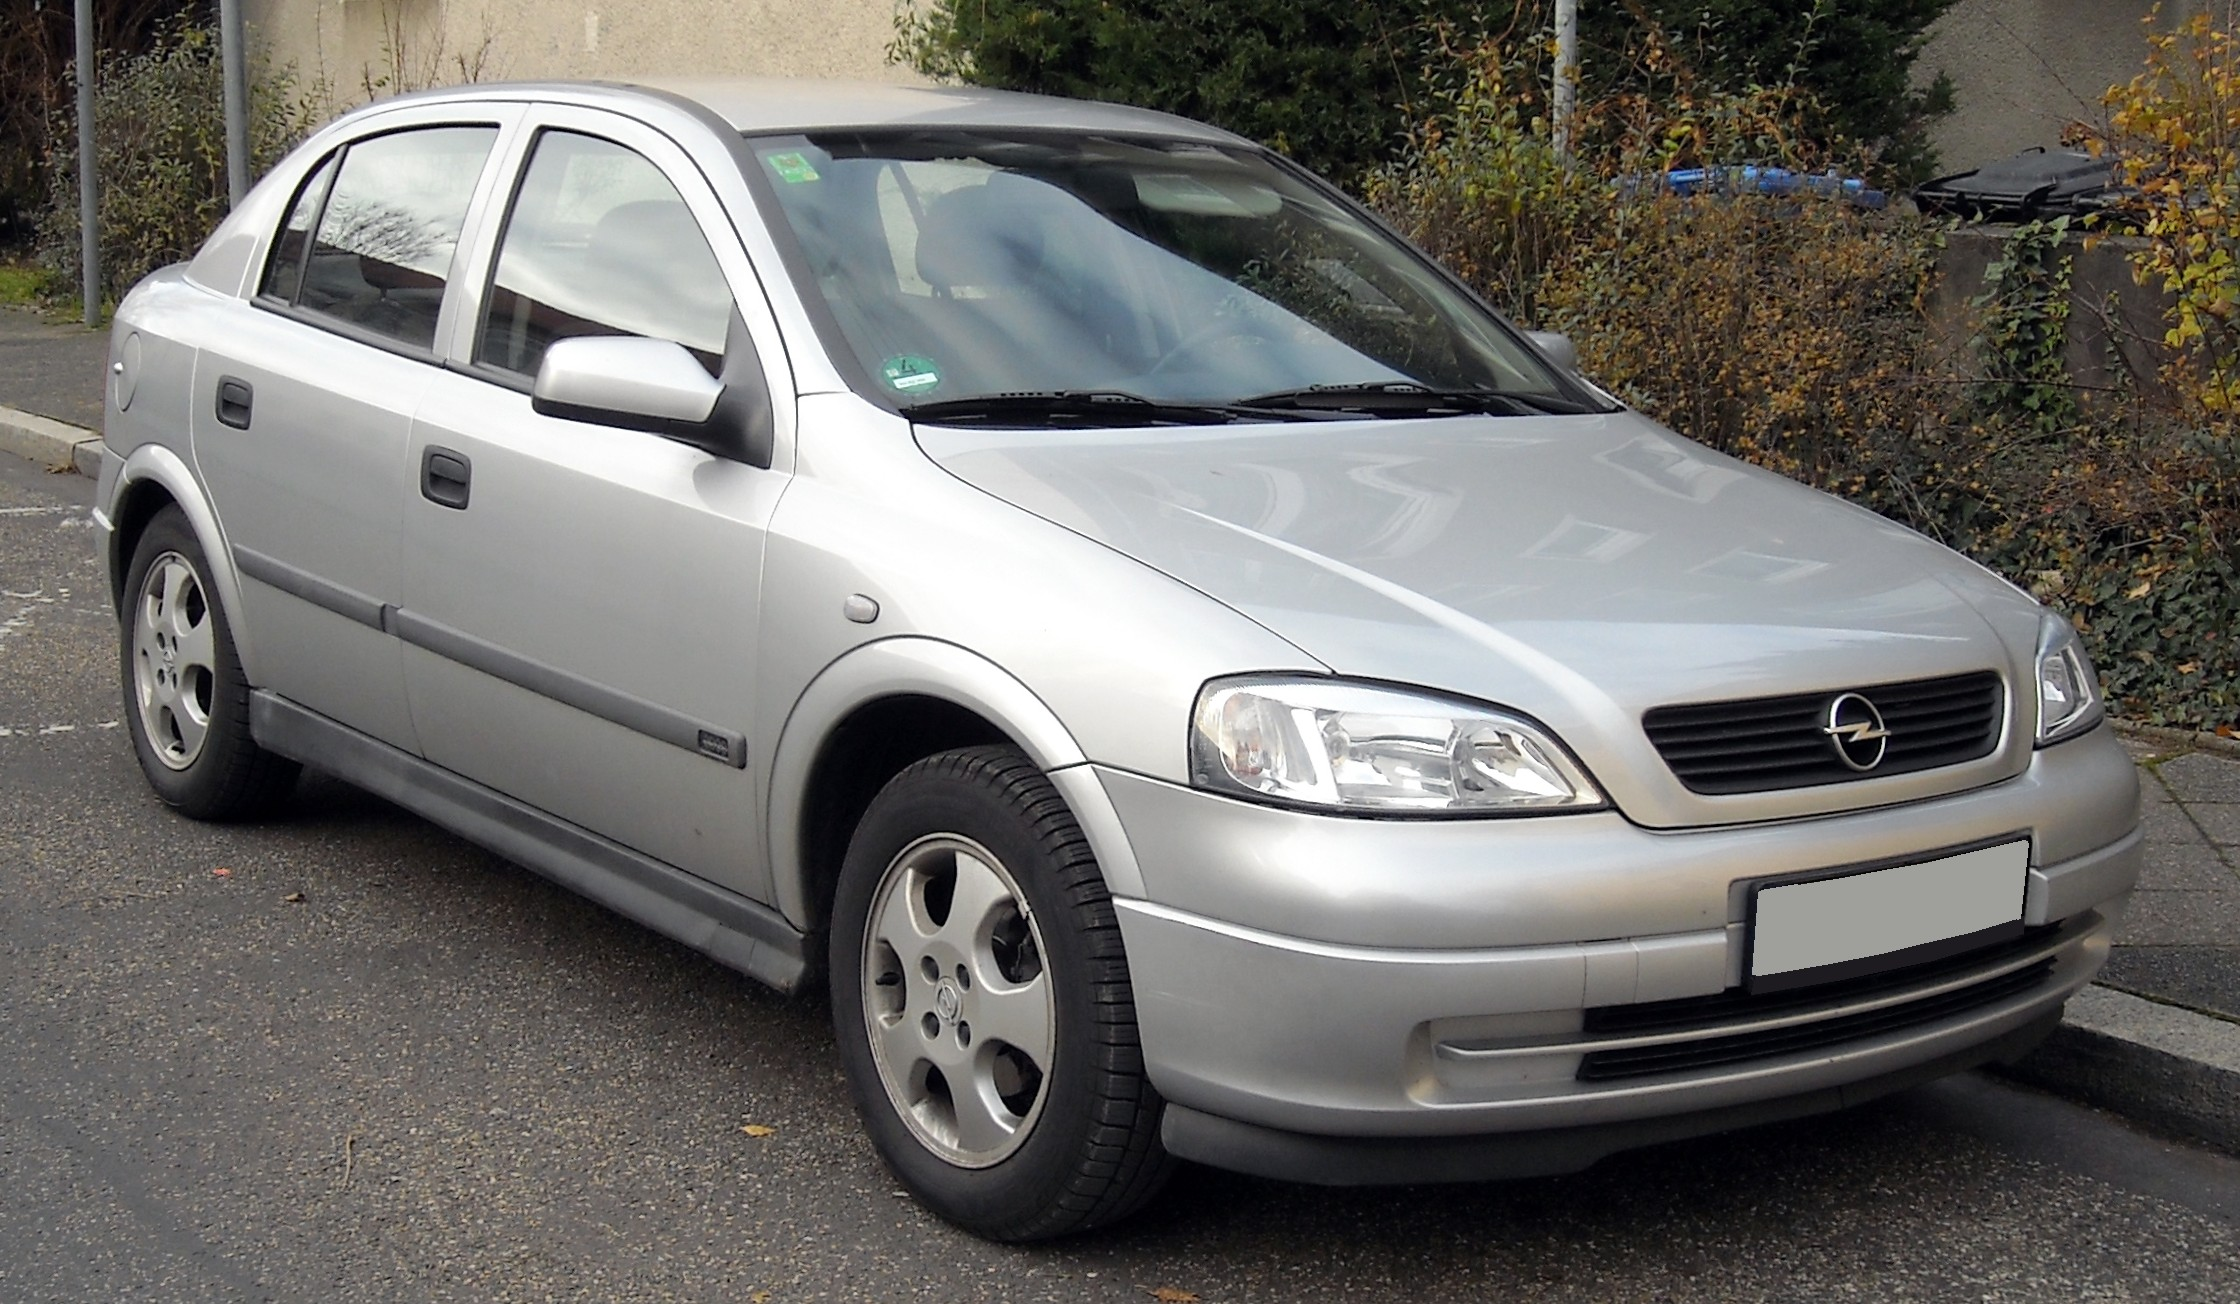 chevrolet corsa sedan (gm 4200) 1998 pics